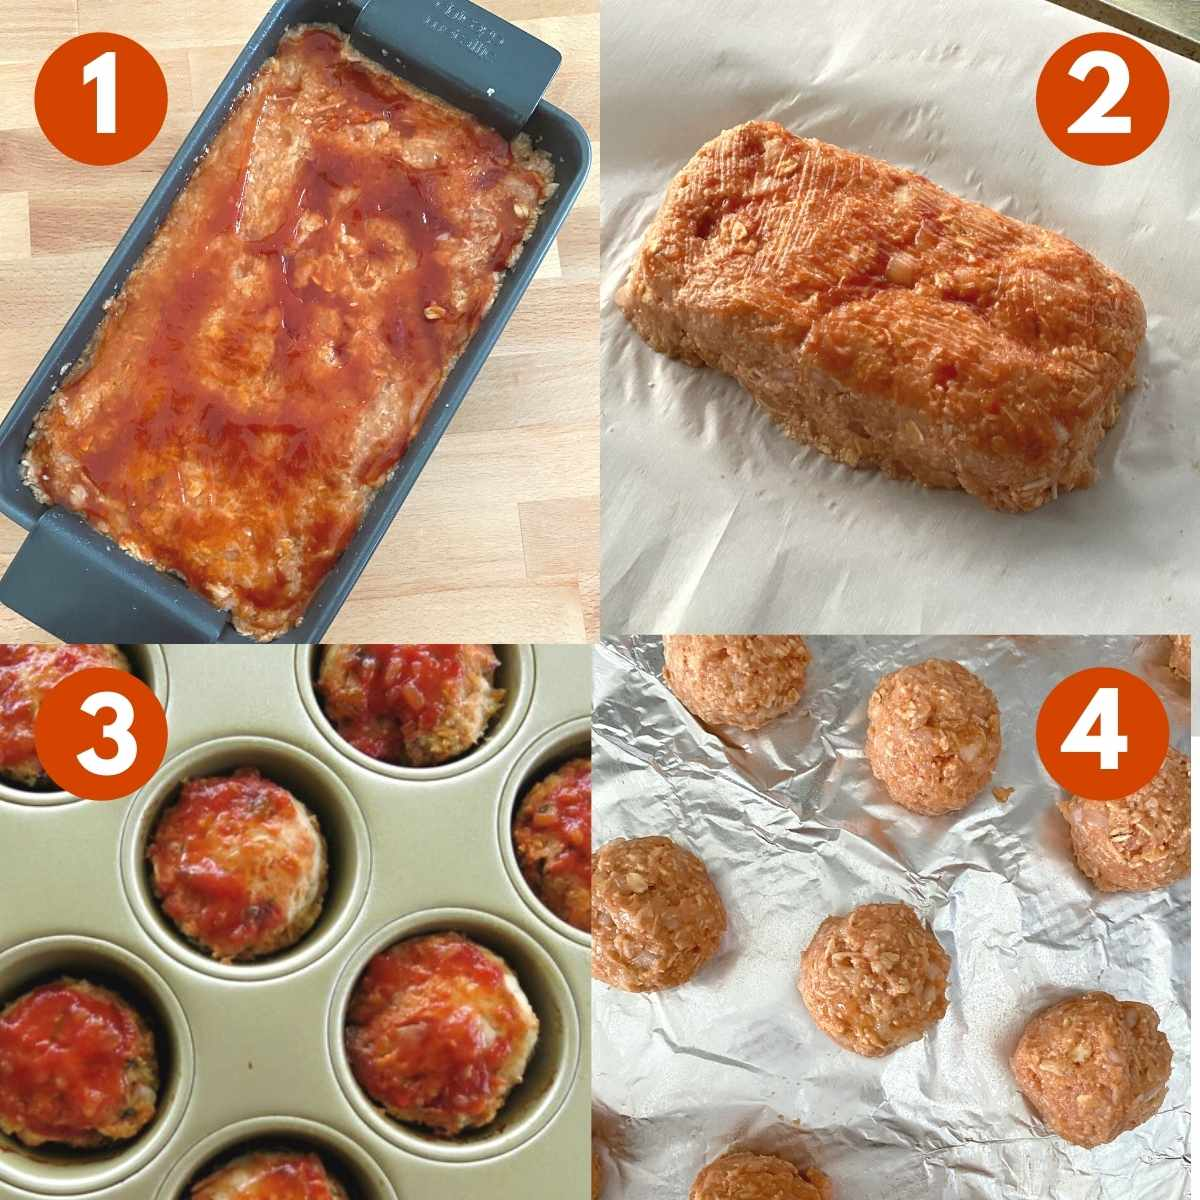 Numbered collage of 4 ways to shape mixture for meatloaf.